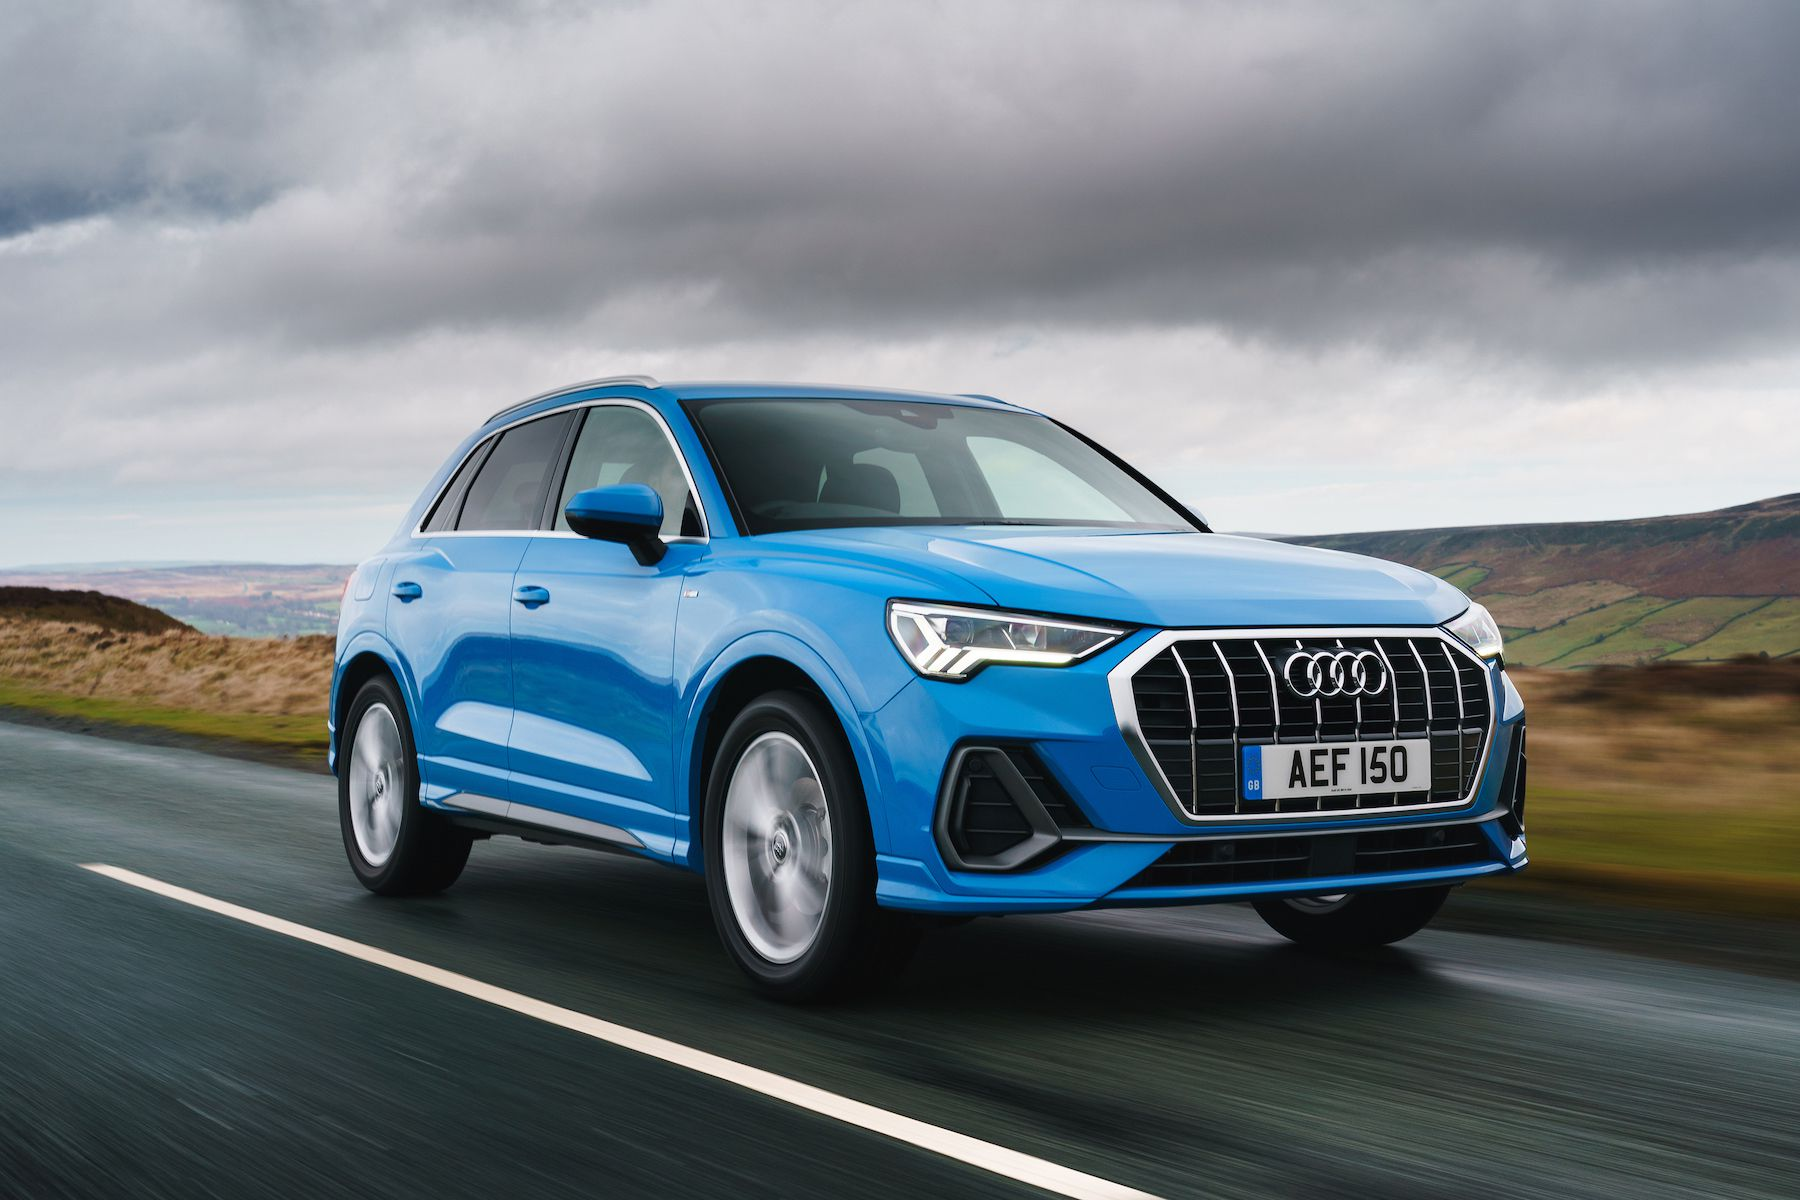 Blue Audi Q3 SUV on road from side front